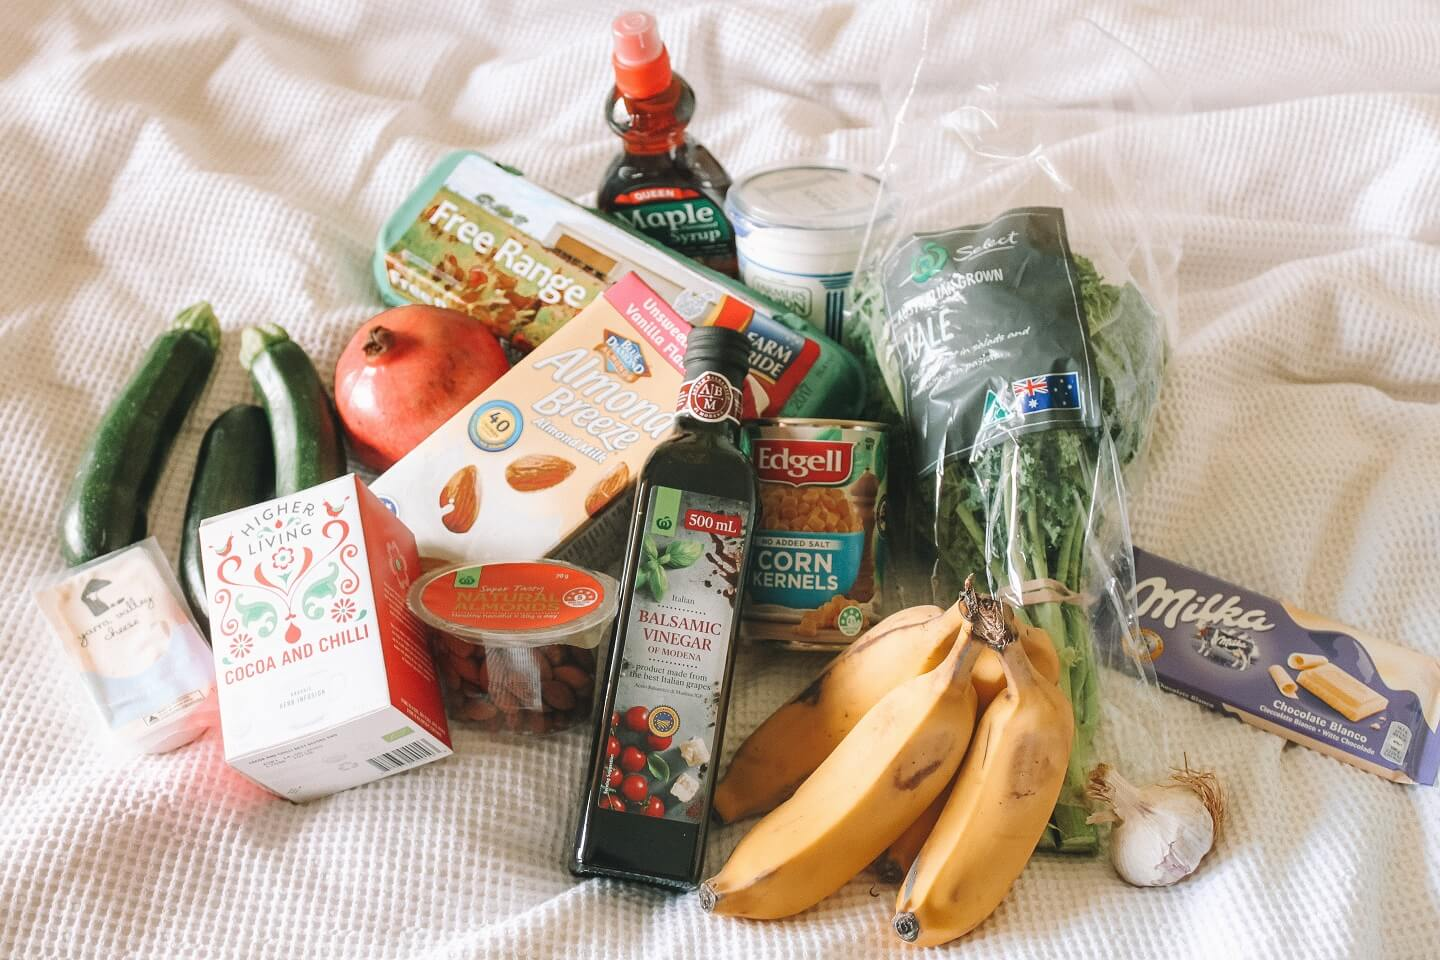 An assortment of fruits, veggies, and food on a display cloth.